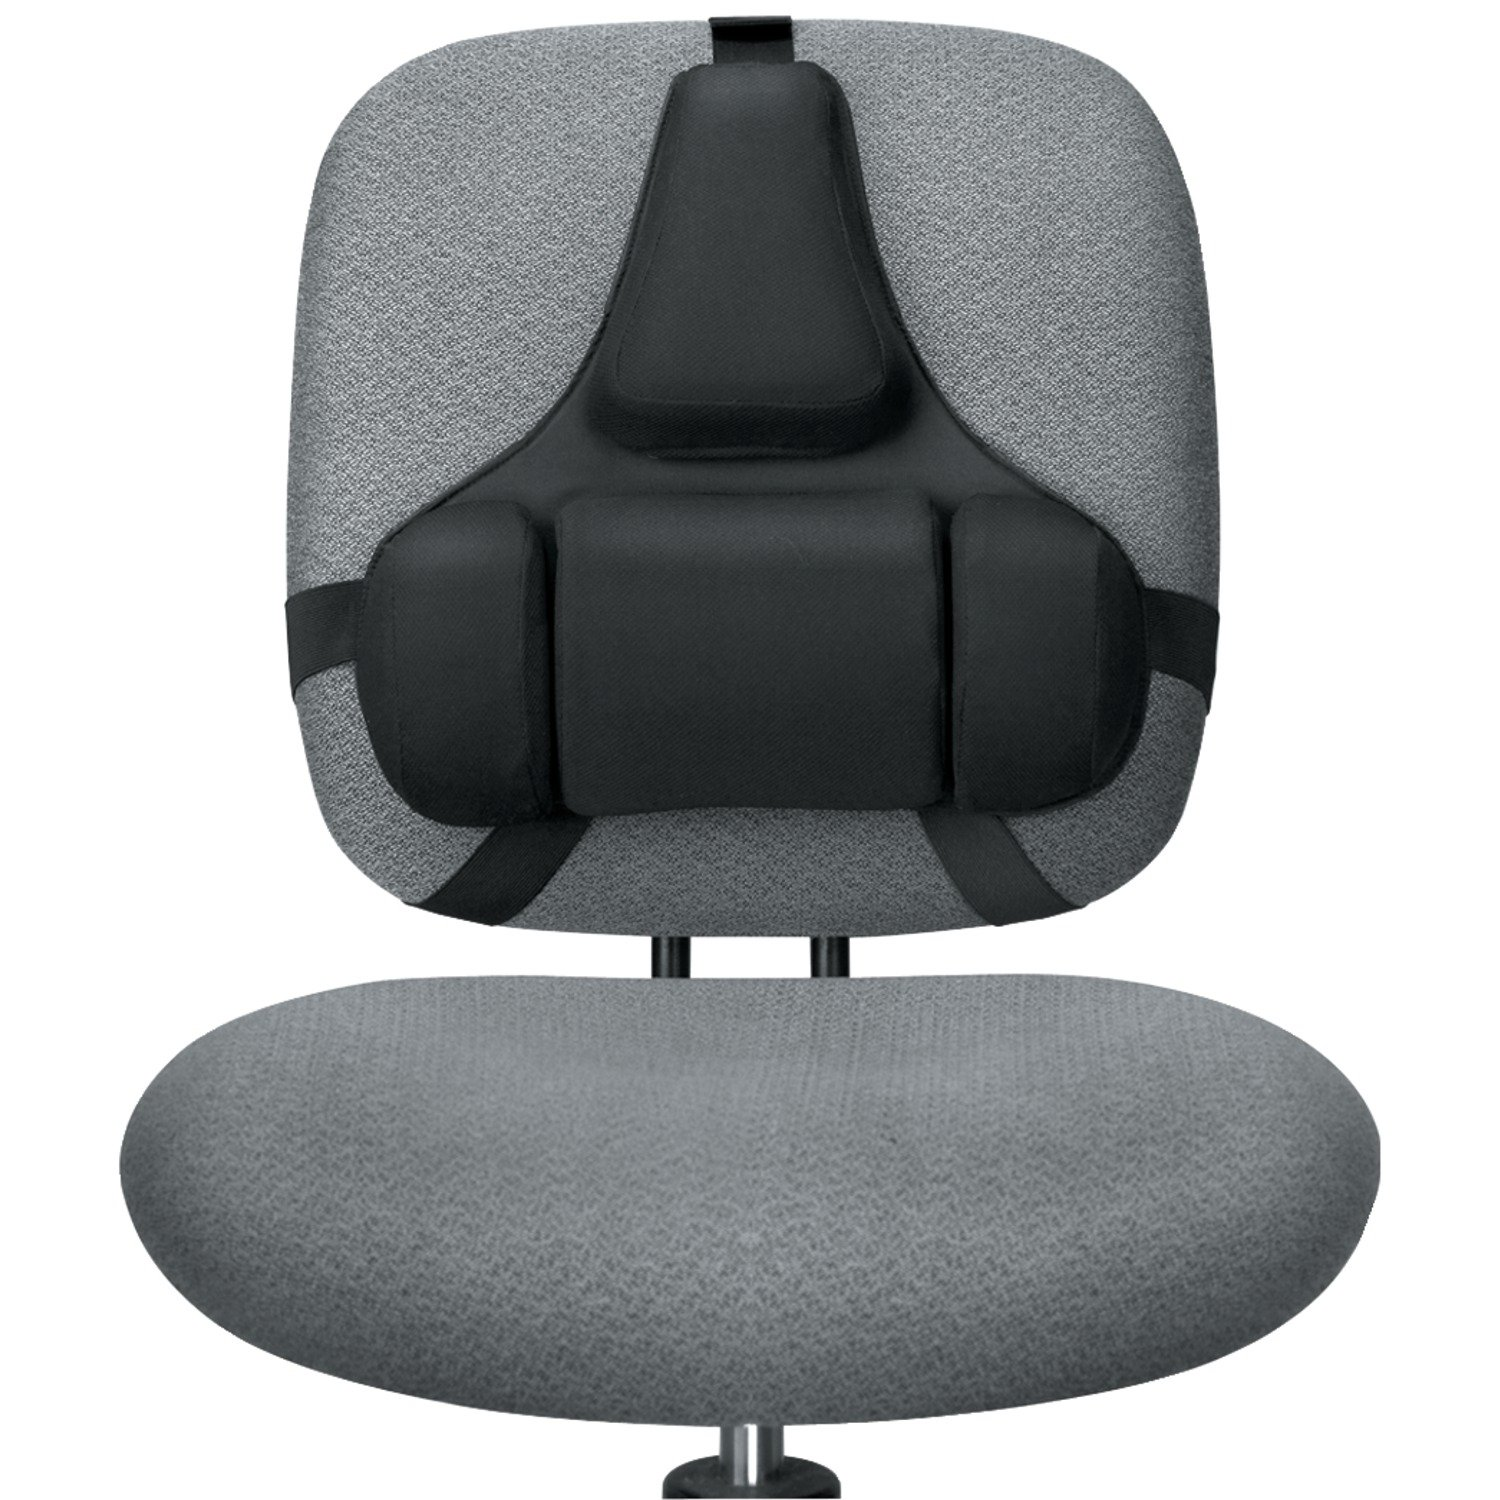 ergonomic executive australia chairs furniture collection desk newest best chair inside office back of with support